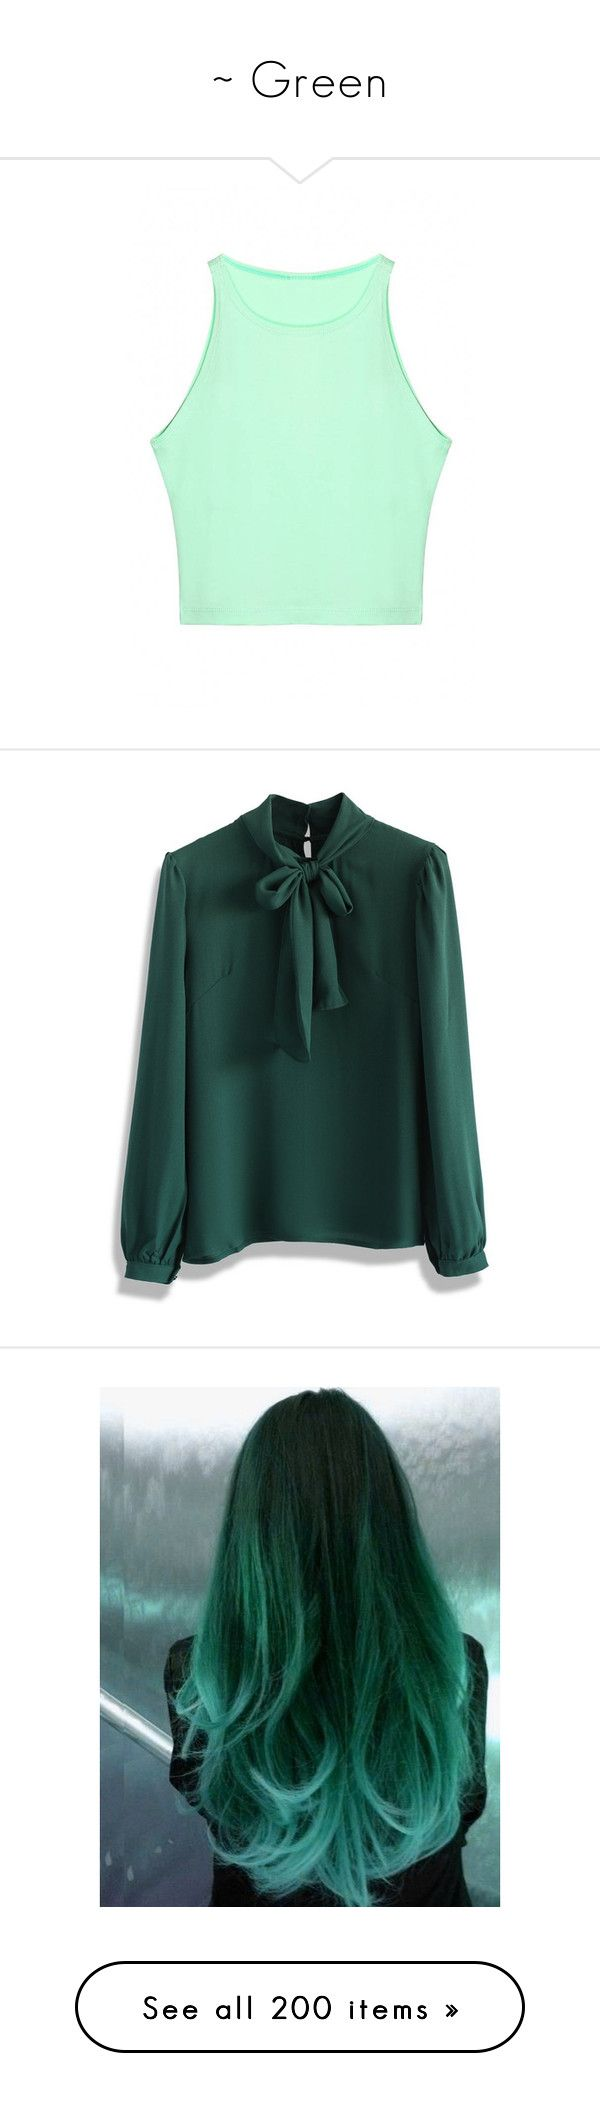 """""""~ Green"""" by moniquedawson09123 ❤ liked on Polyvore featuring tops, green, shirts & tops, leather top, mint crop top, crop top, crew shirt, mint green shirt, blouses and shirts"""